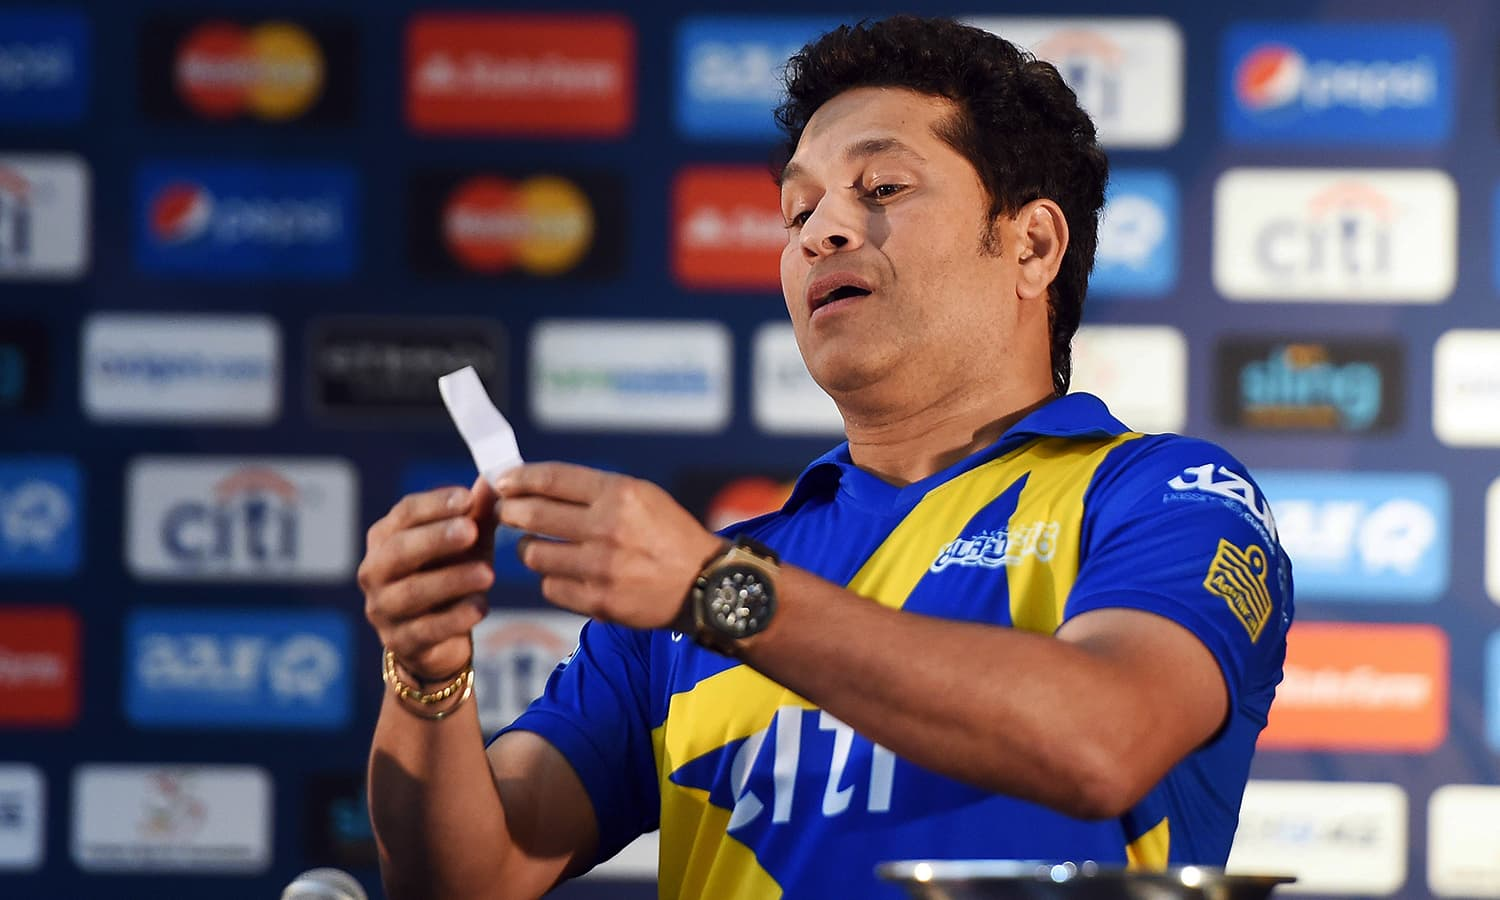 """Retired Indian cricketer Sachin Tendulkar reacts he draws the names of players during a press conference in New York on November 5, 2015. Tendulkar and Australia's Shane Warne will lead a lineup of renowned cricket players from around the world in the inaugural """"Cricket All-Stars,"""" a three-game series to be played in Major League Baseball stadiums in New York , Houston and Los Angeles, to promote cricket the US. AFP PHOTO/JEWEL SAMAD"""